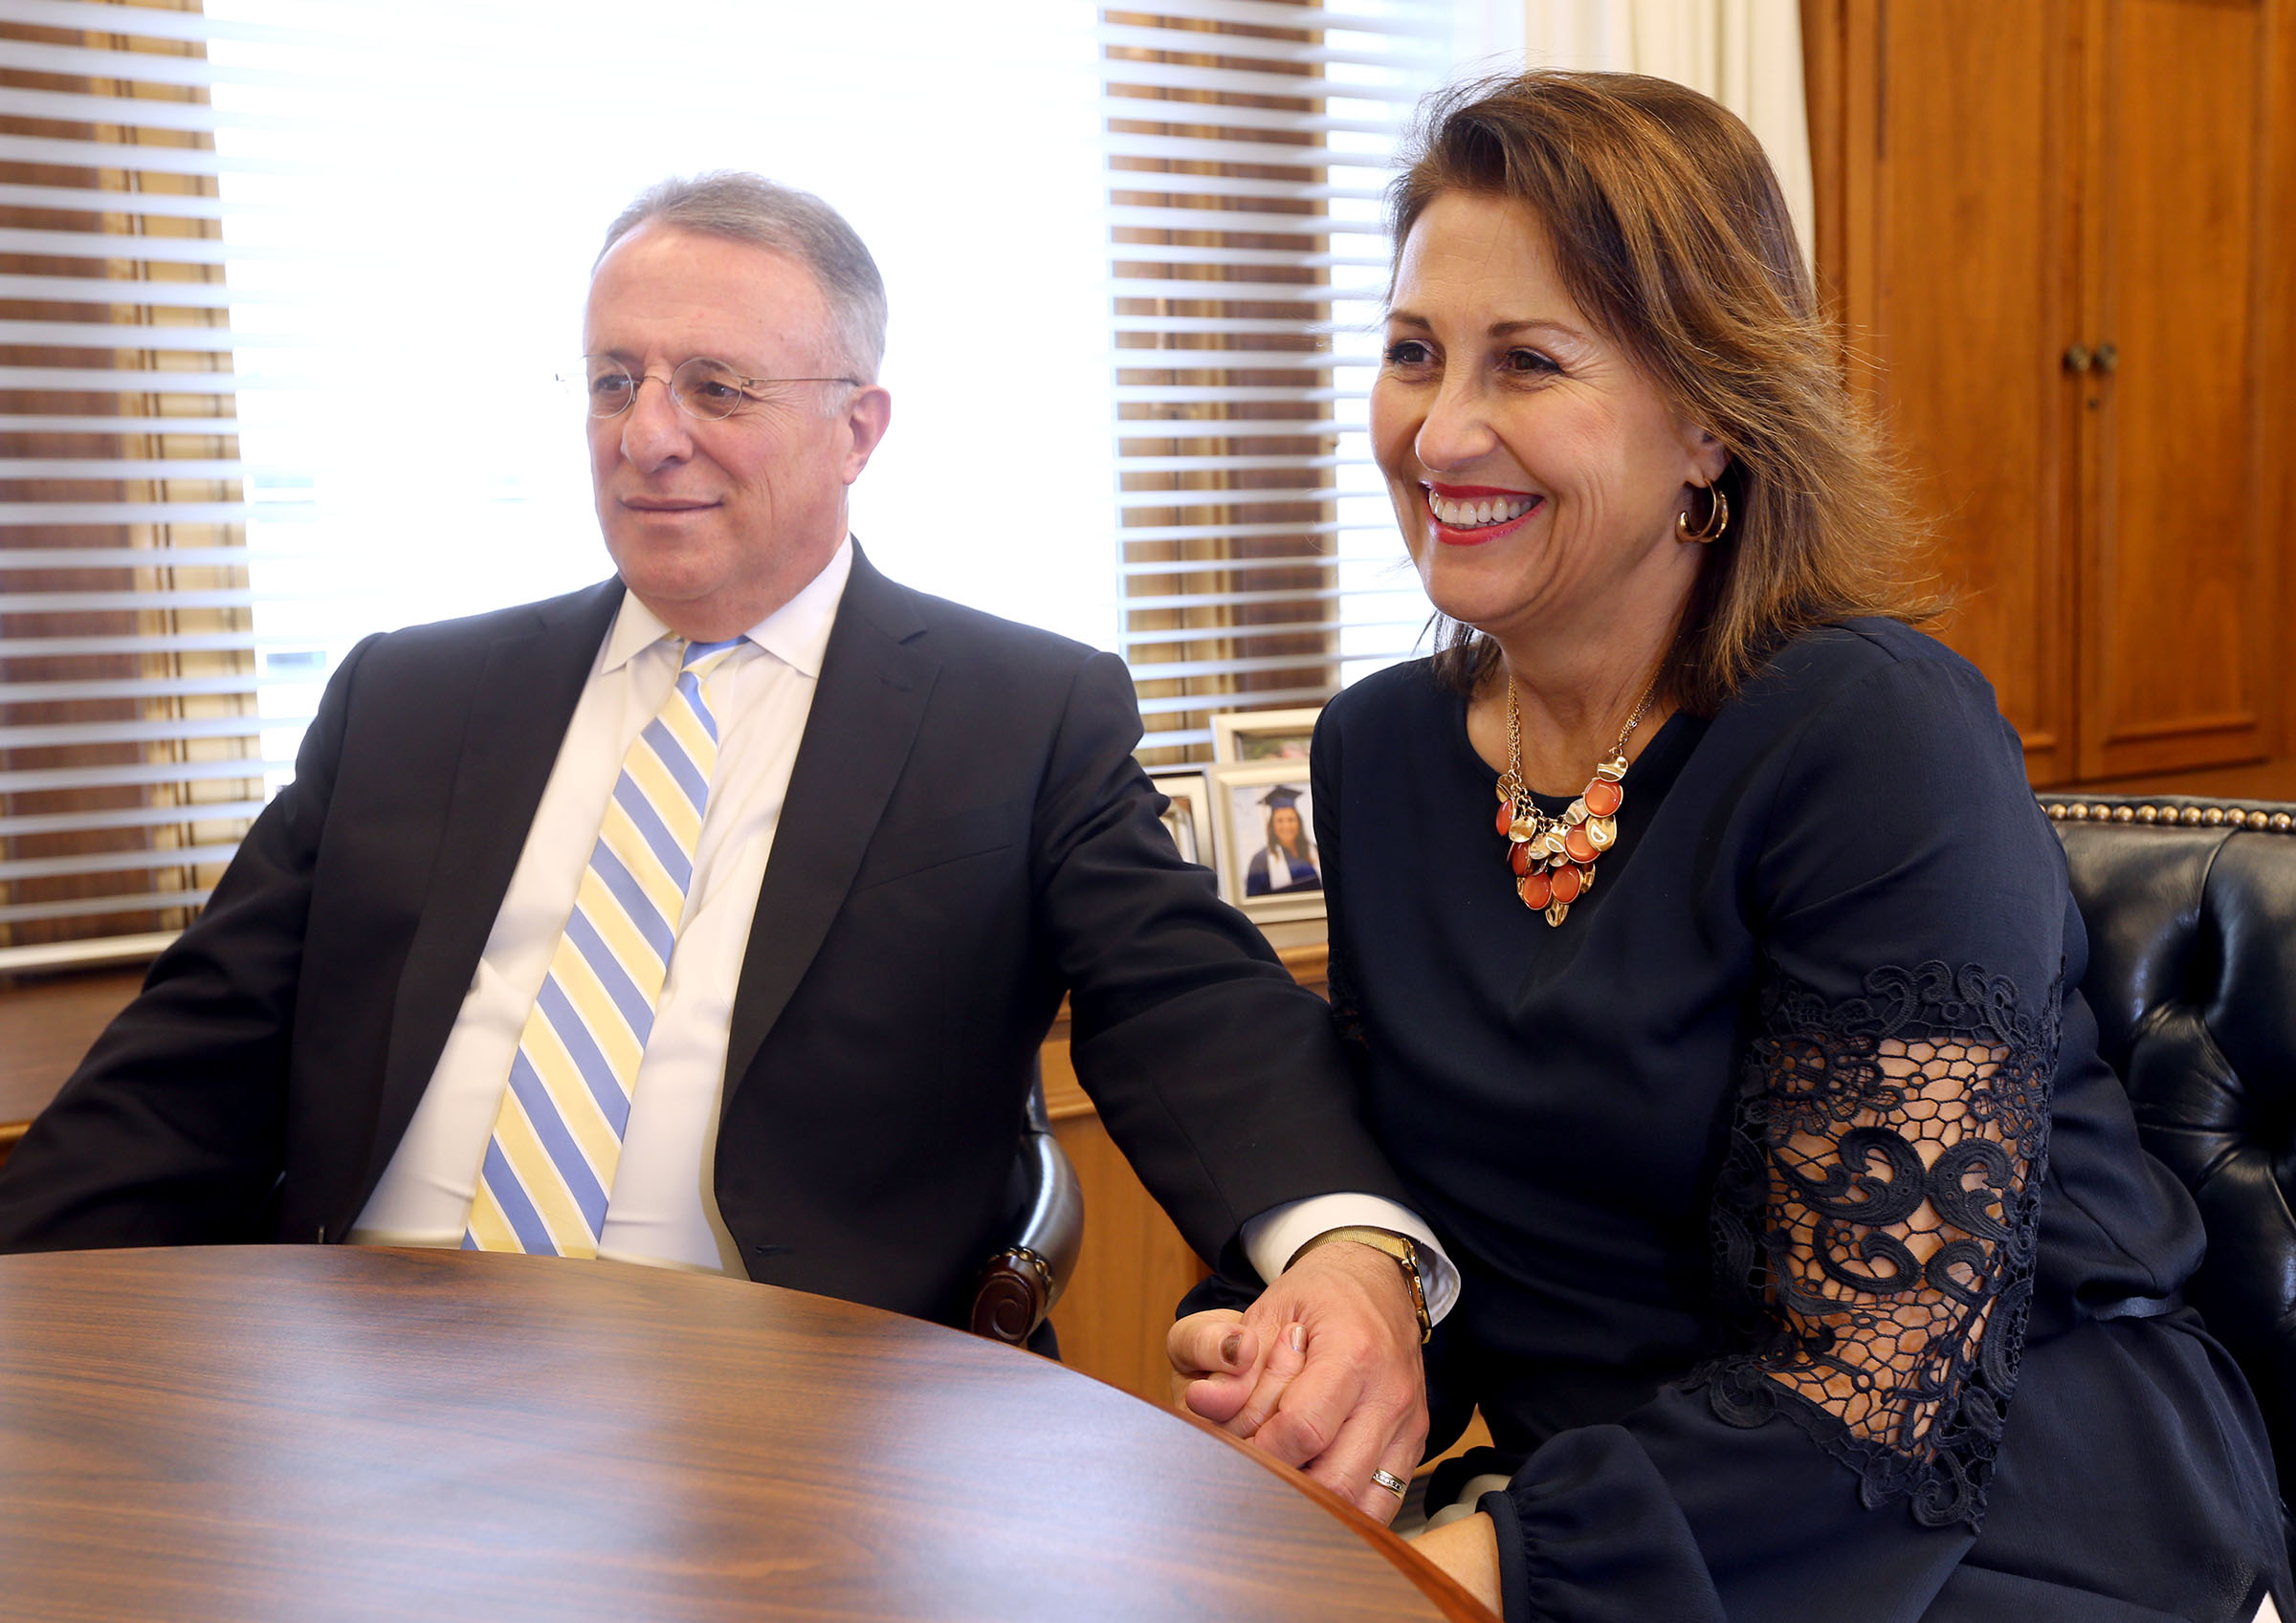 Elder Ulisses Soares and Sister Rosana Soares answer questions in Elder Soares' office in Salt Lake City on Wednesday, April 4, 2018. Elder Soares returned to the neighborhood of his youth during a recent assignment in 2019.